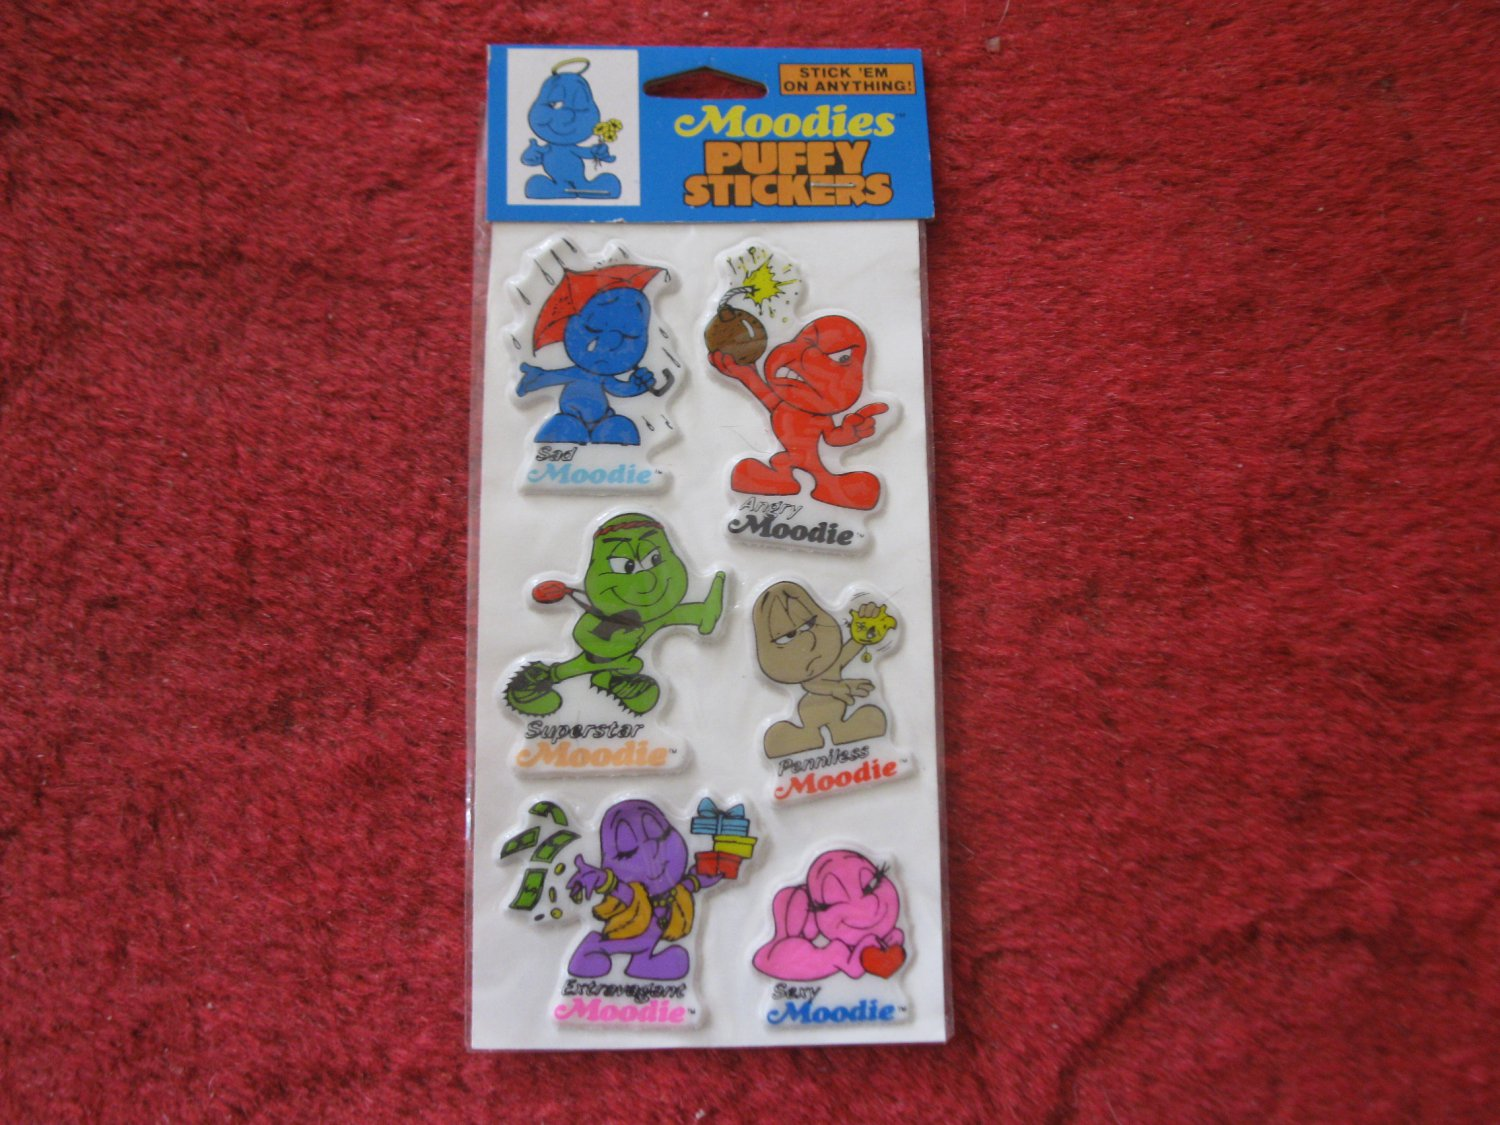 1983 Kent Toys Moodies Puffy Stickers (blue top card)- Factory Sealed, Never Opened